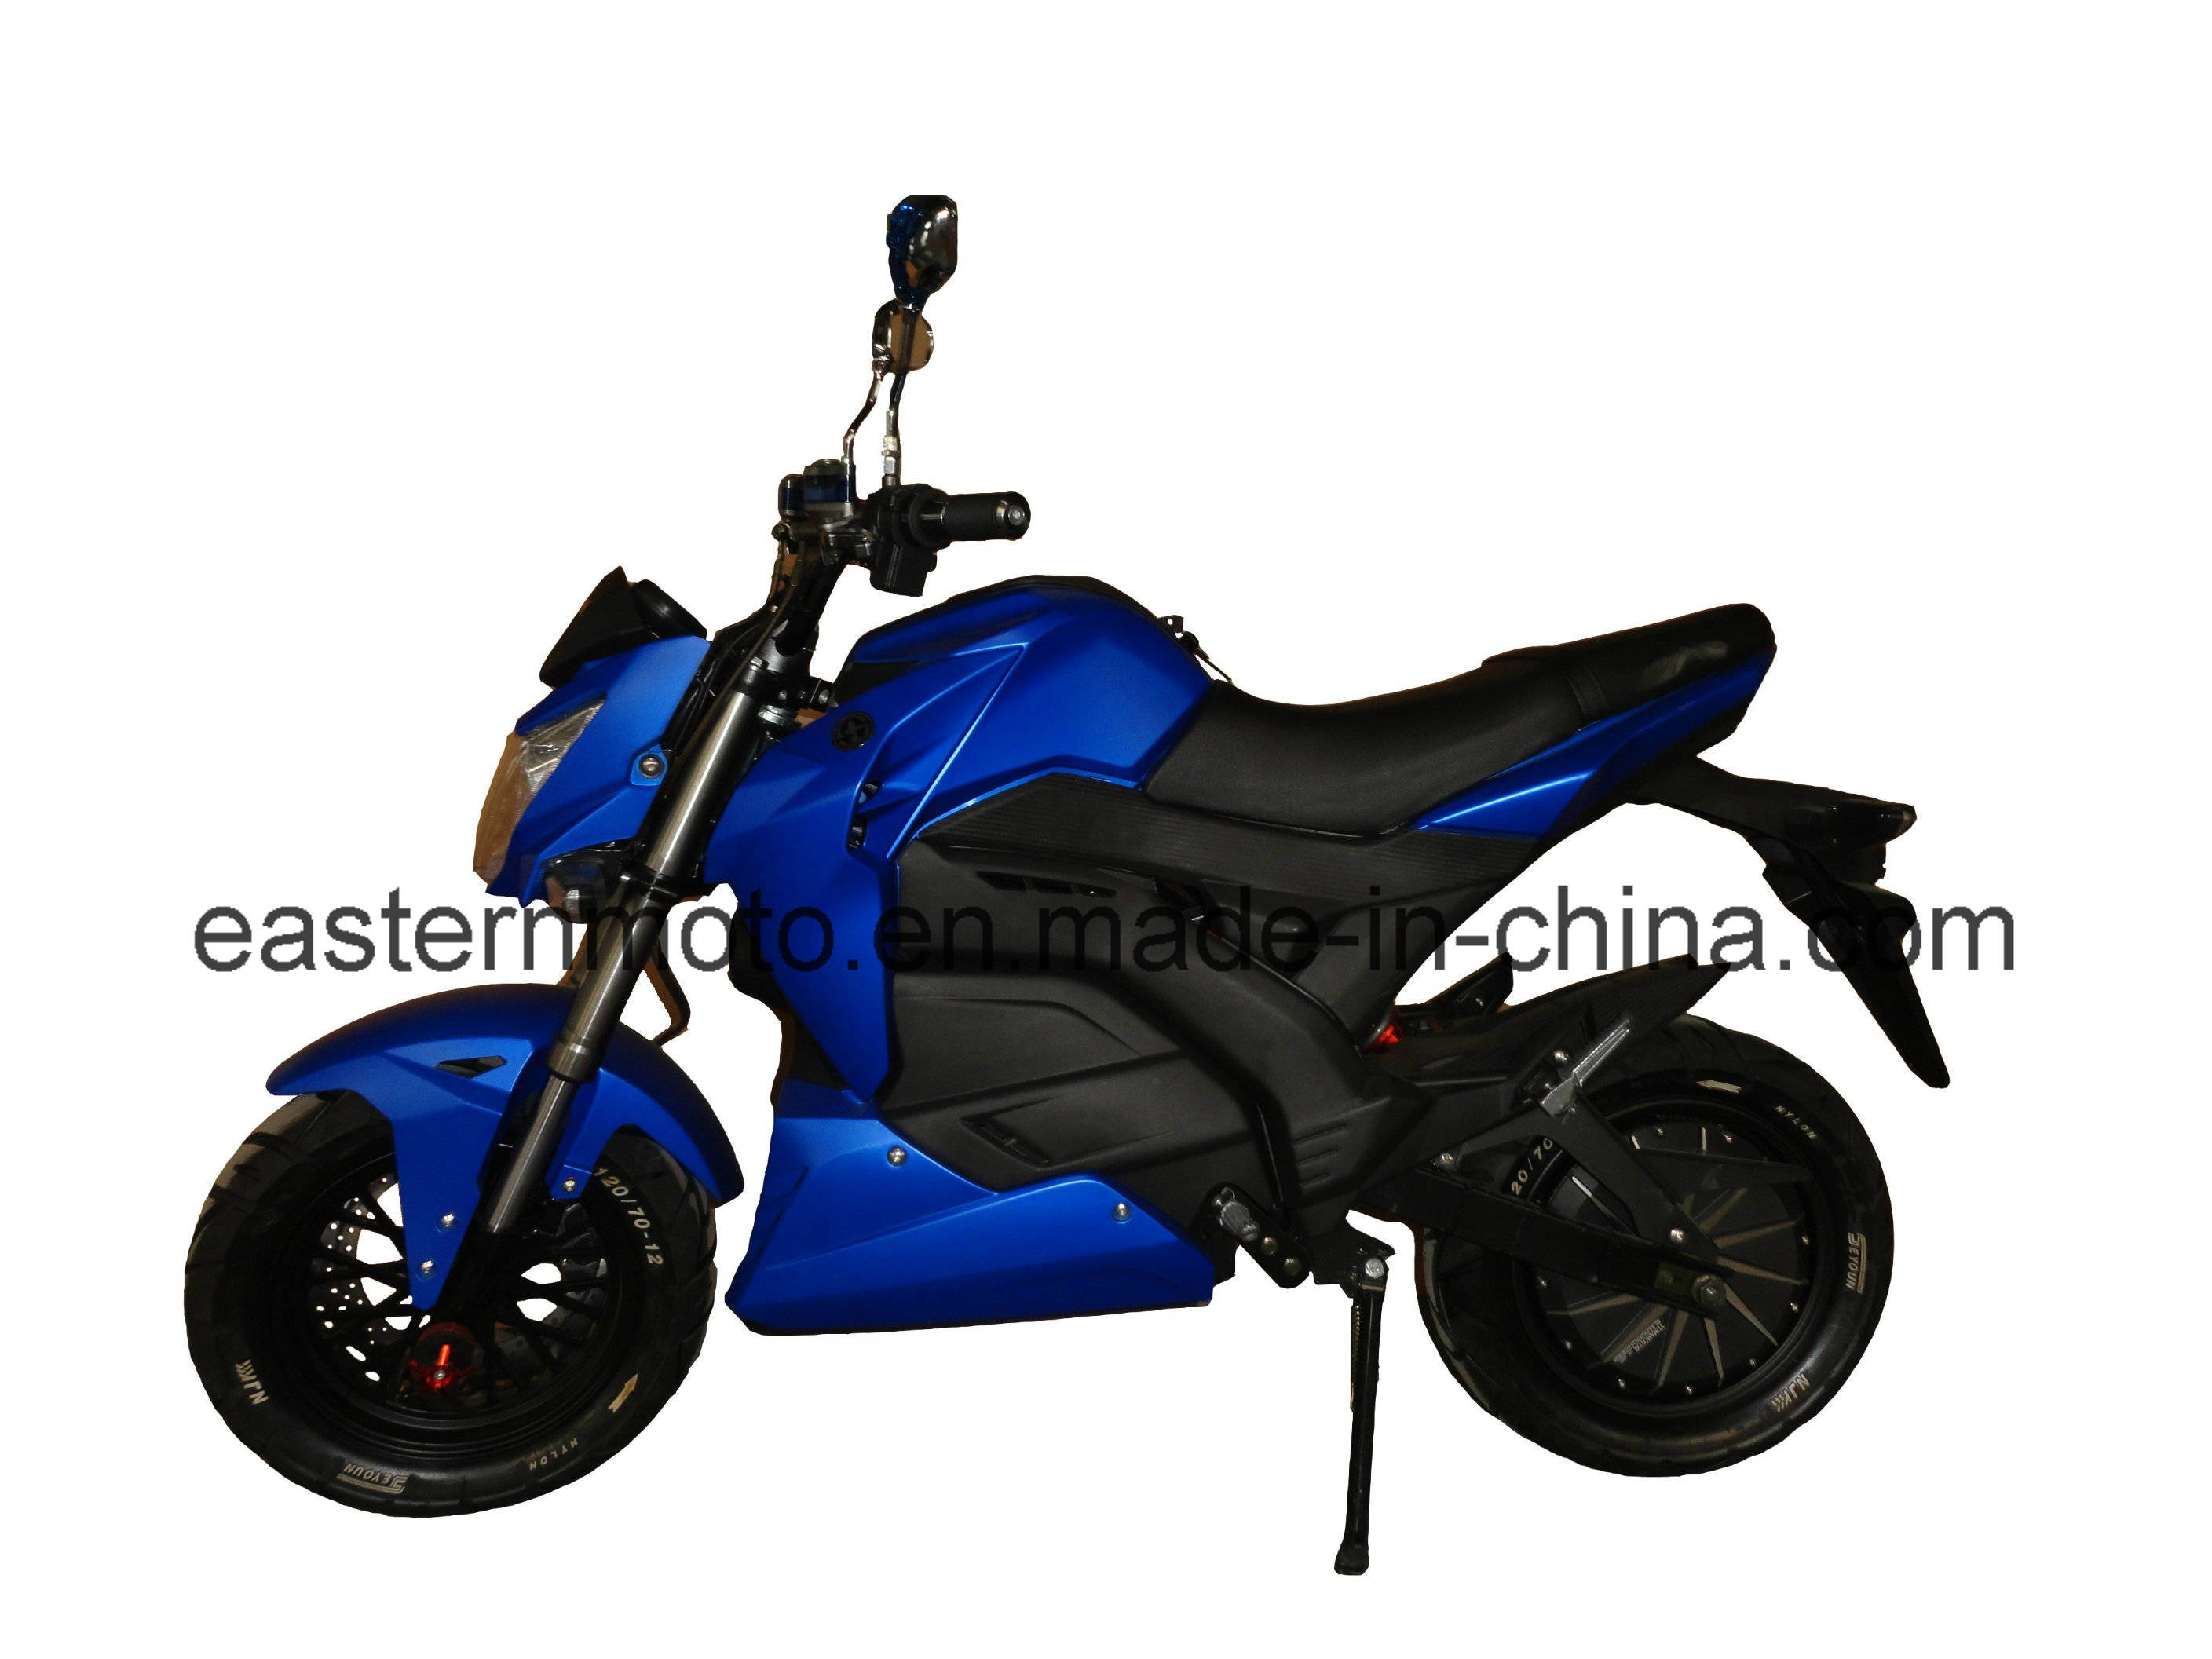 2017 Factory Sales New Street Racing Sports Electric Motorcycle